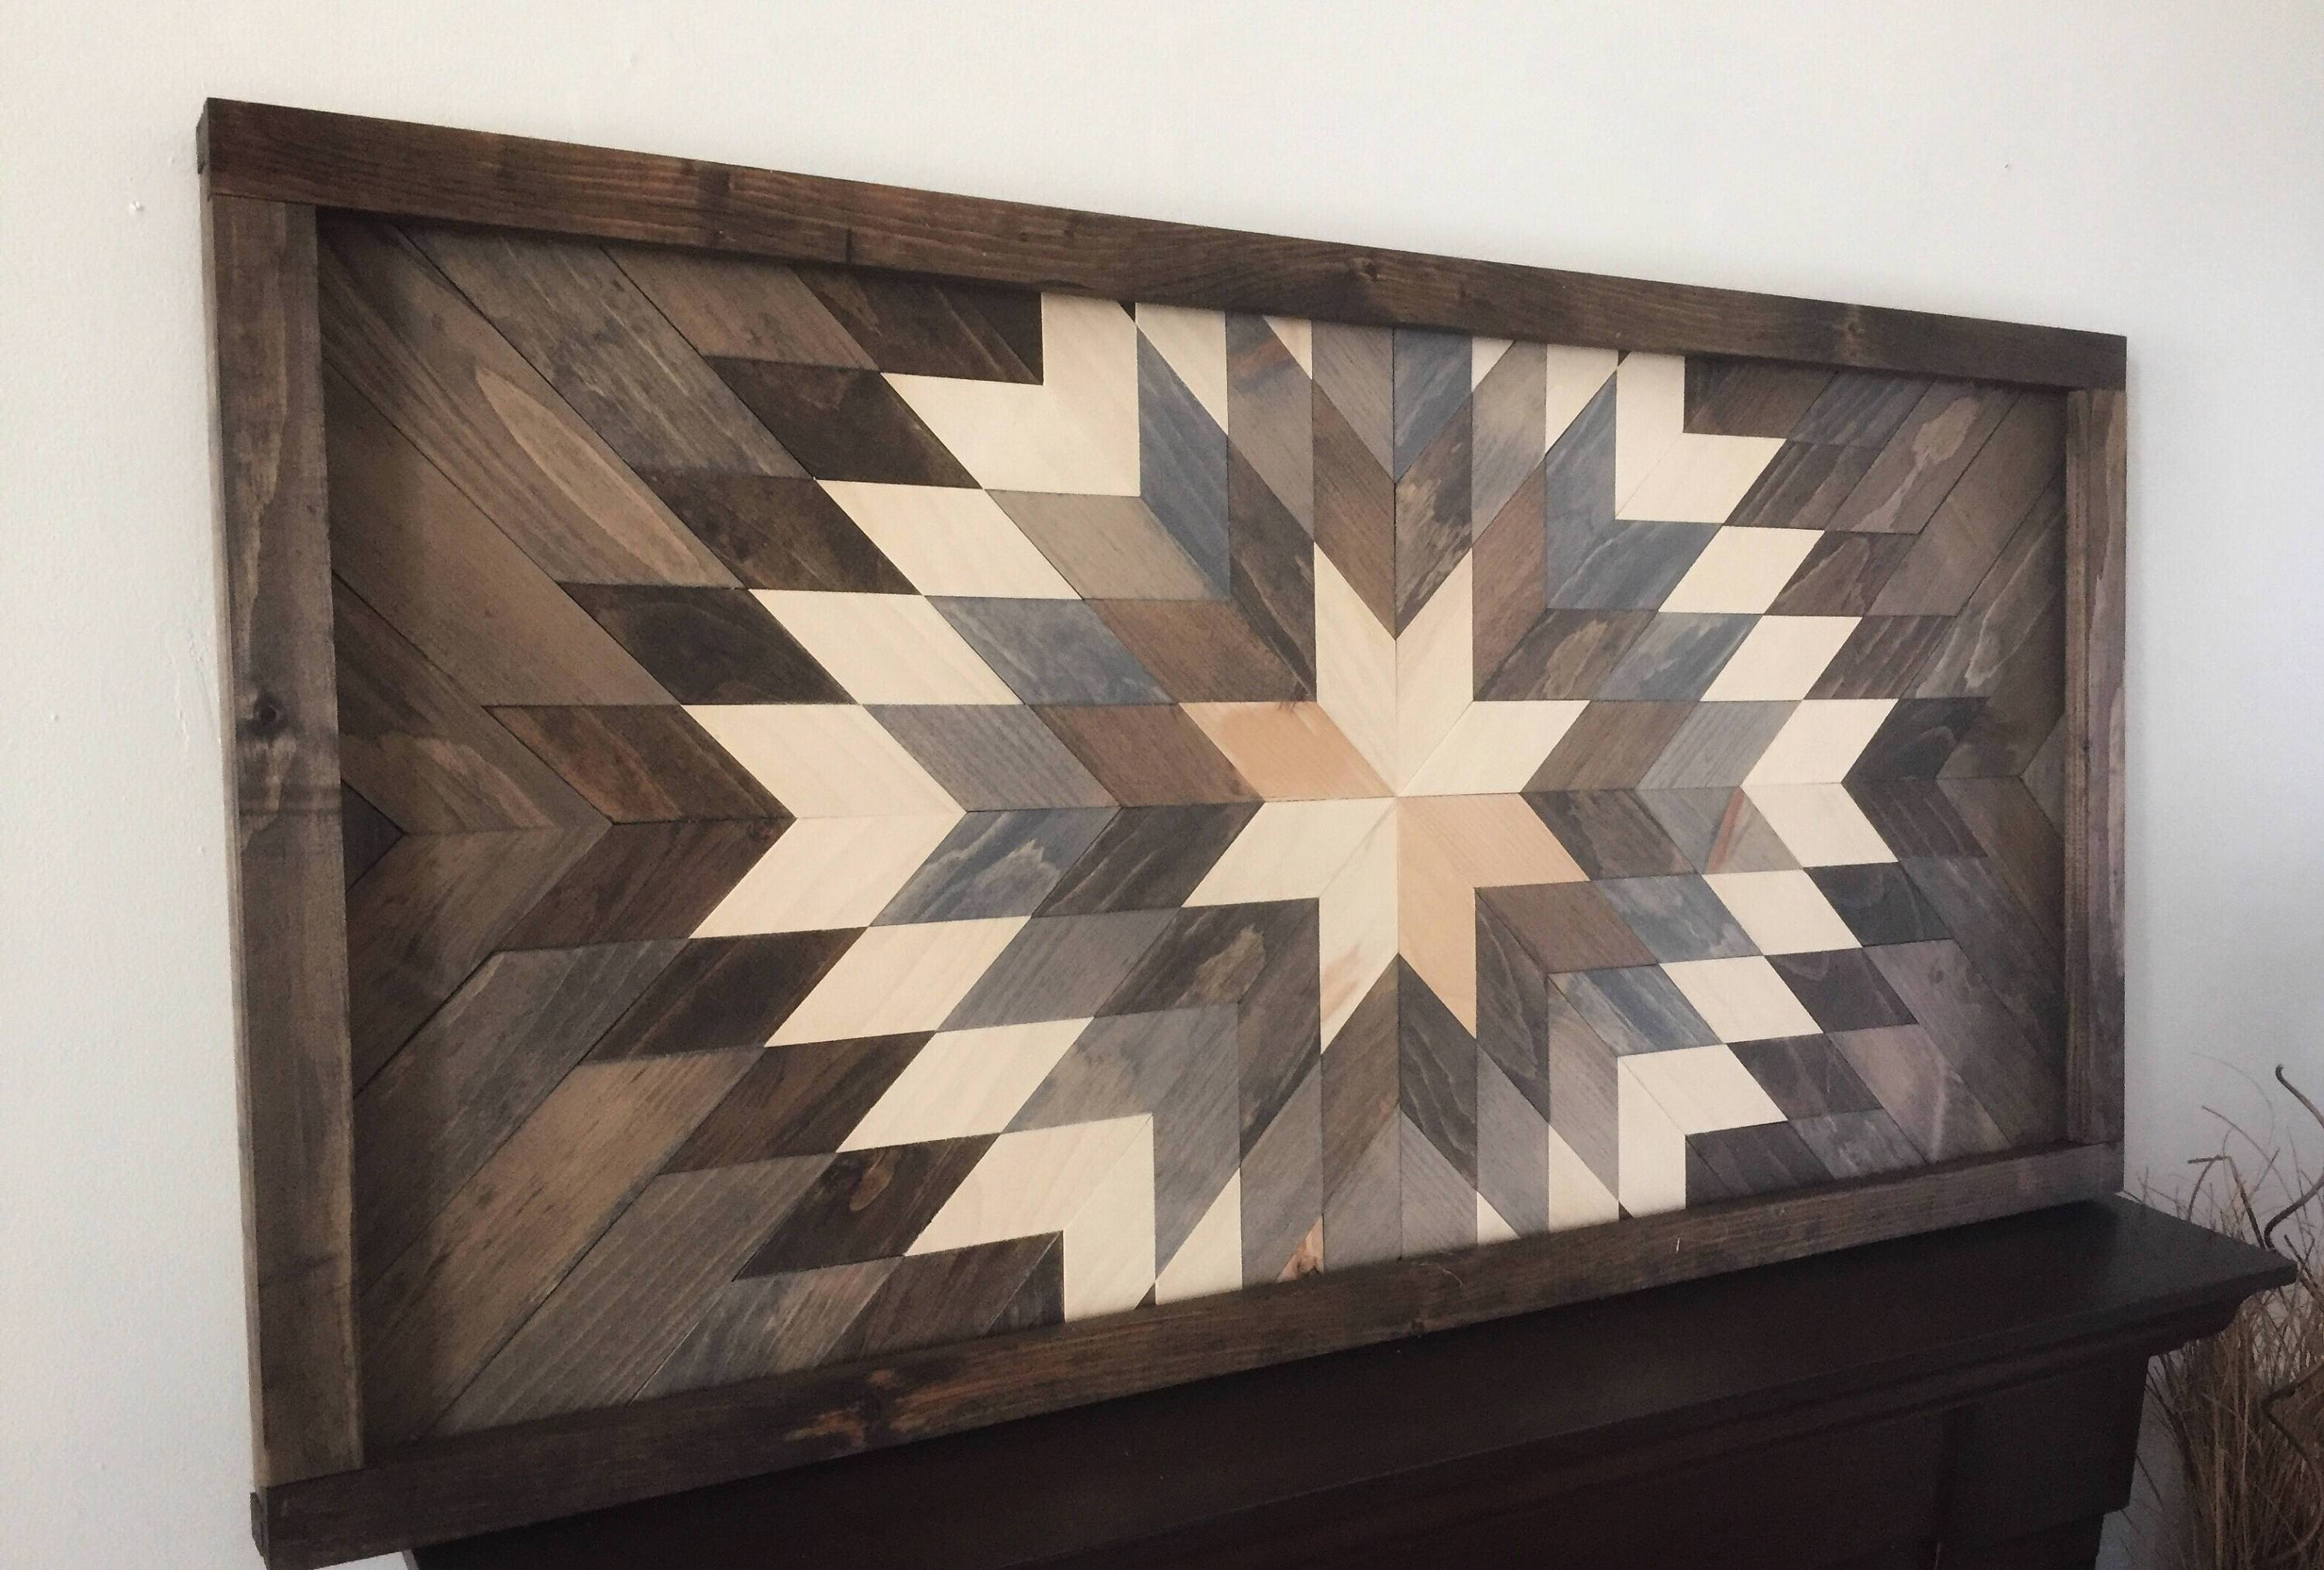 Reclaimed Wood Wall Art – Sunburst In Gray – Dark Frame Pertaining To Most Up To Date Dark Wood Wall Art (Gallery 6 of 15)